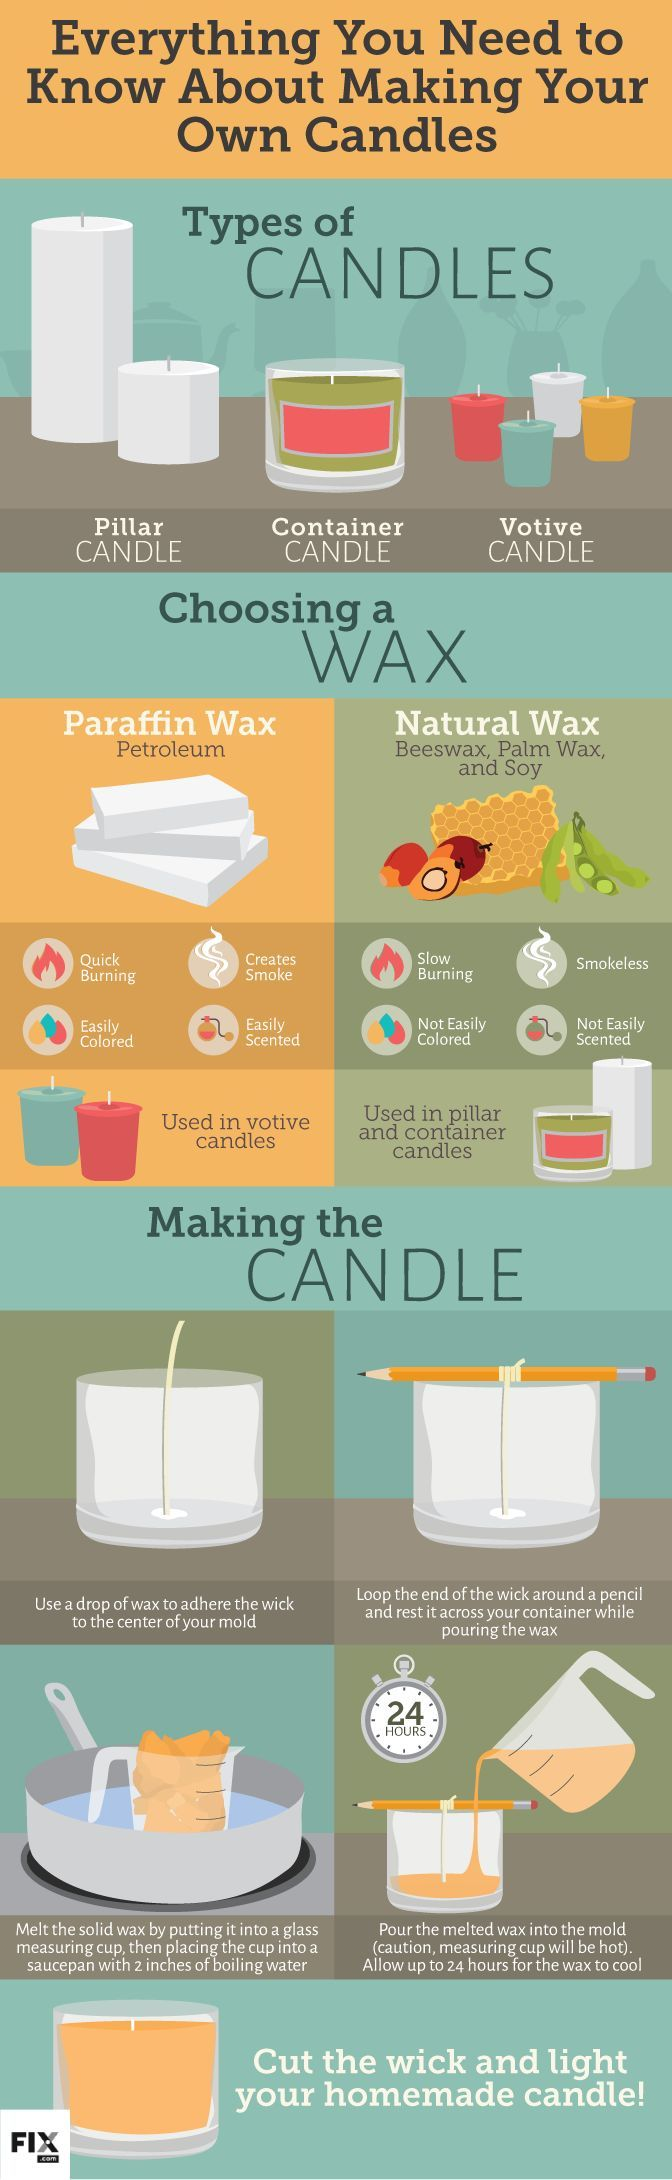 Everything You Need to Know About Making Your Own Candles #infographic #DIY #Candles: